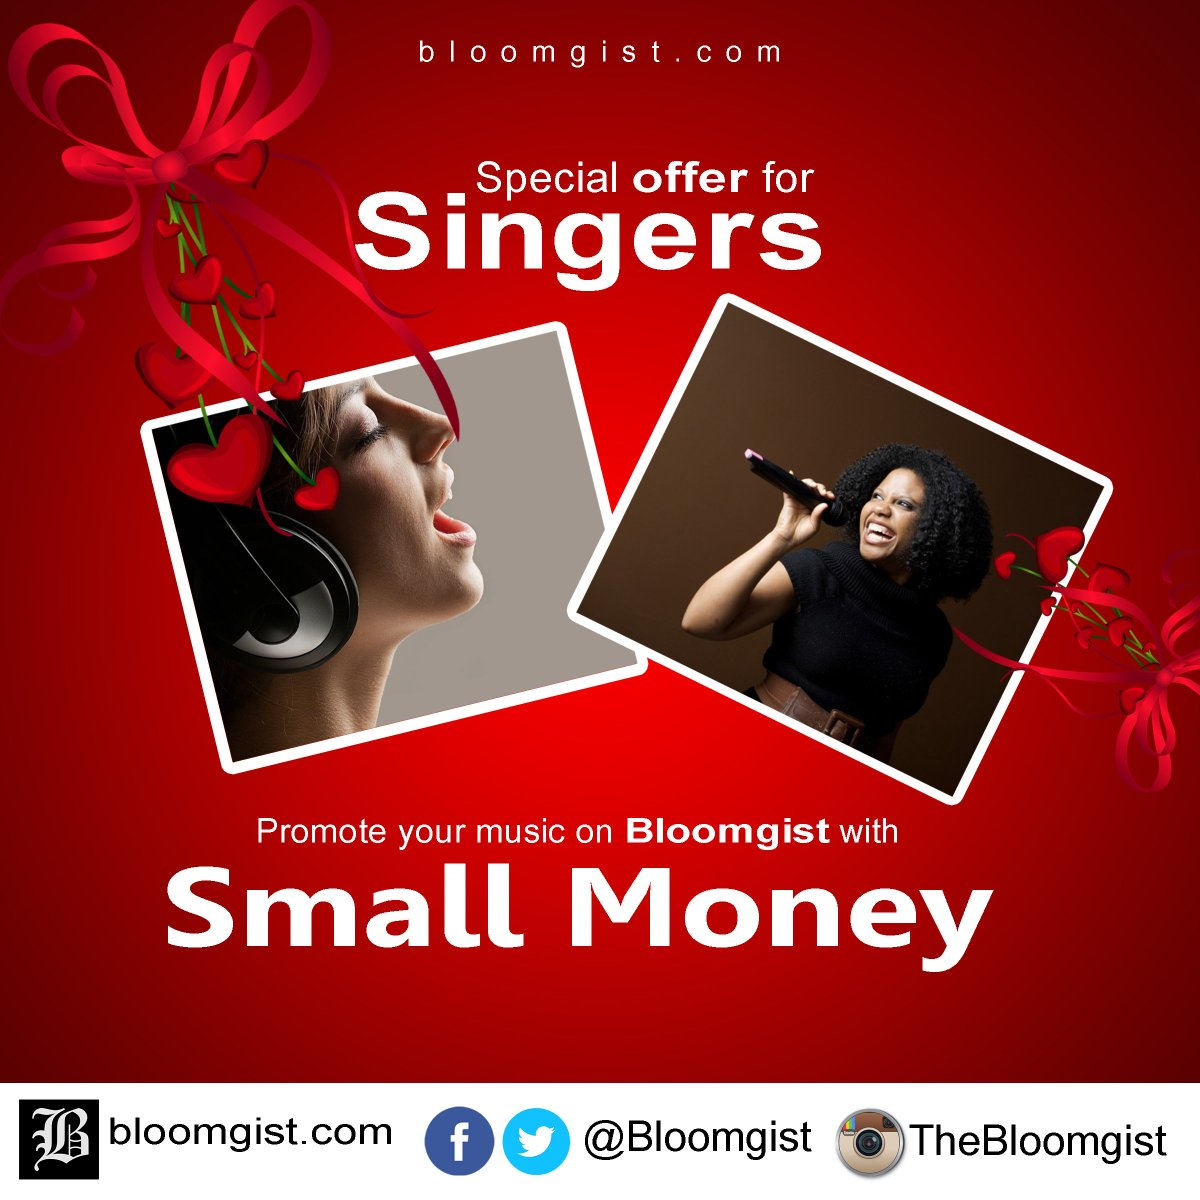 Promote music on Bloomgist